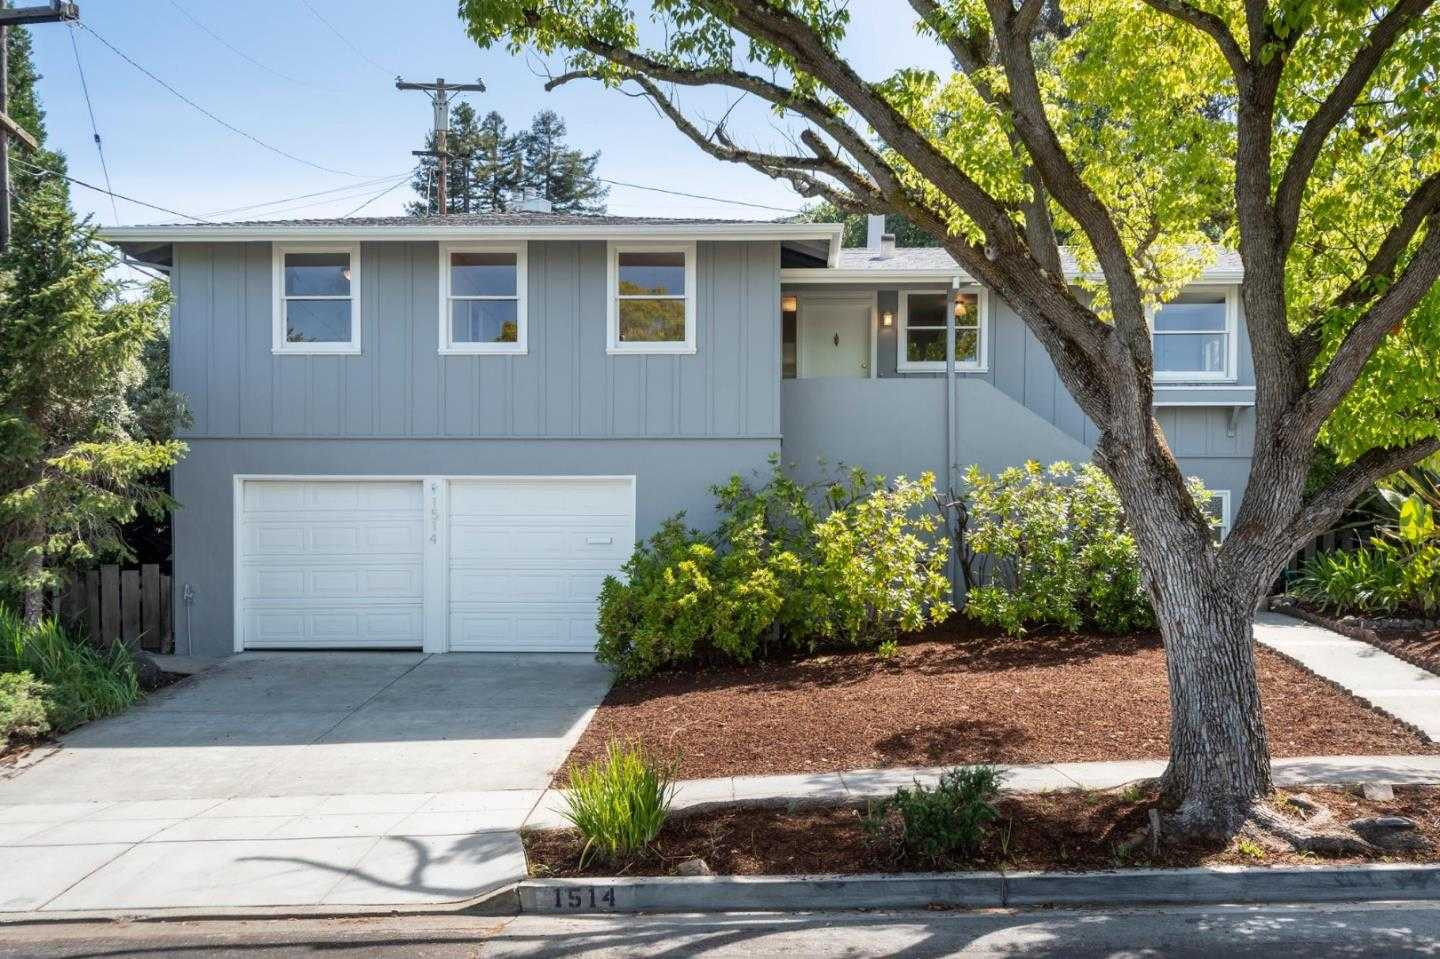 1514 Mitchell WAY REDWOOD CITY, CA 94061